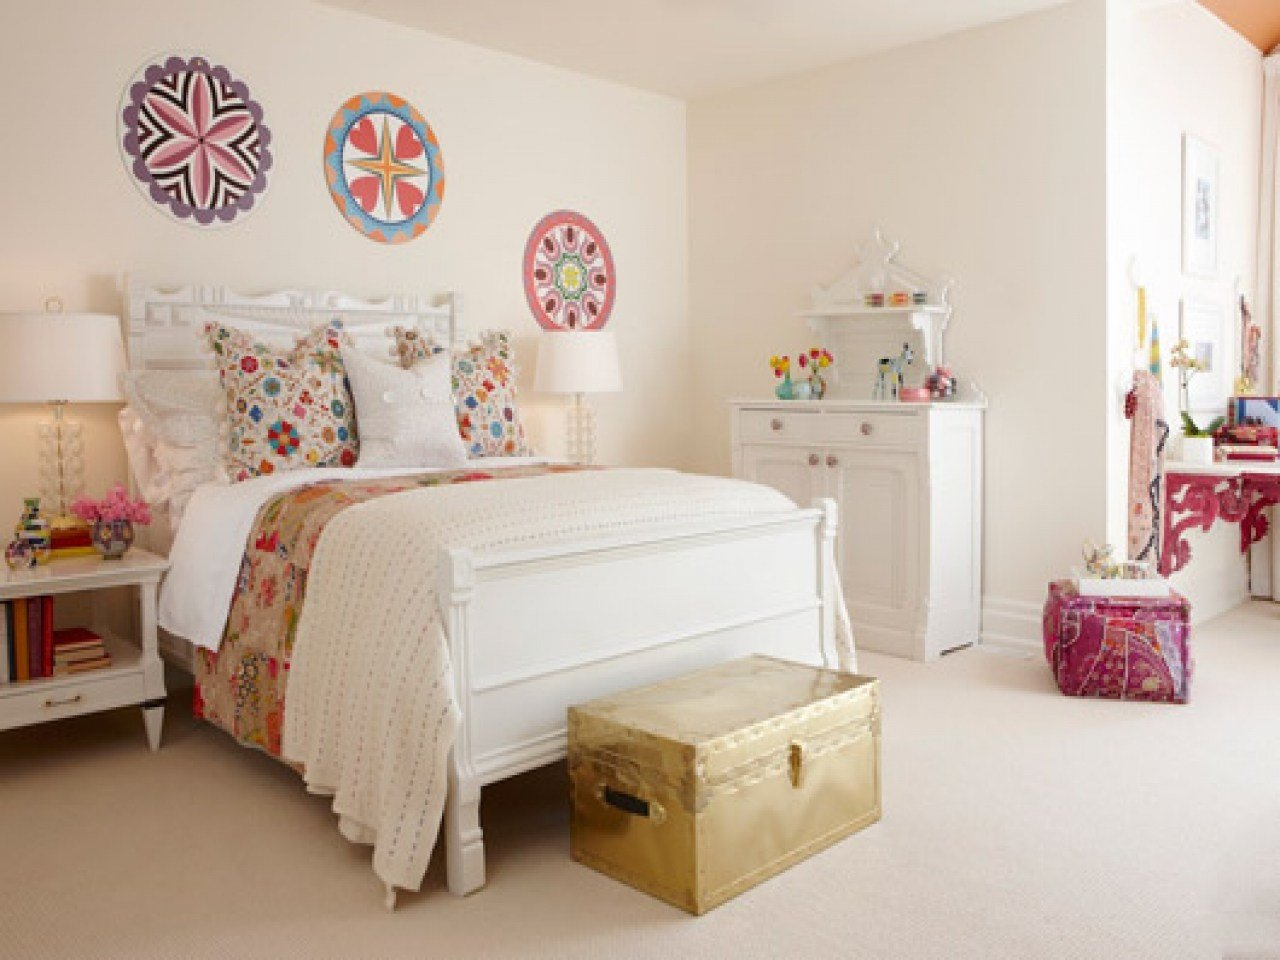 Best Modern Boho Decor Cute Teenage Girl Bedroom Ideas Tumblr With Pictures